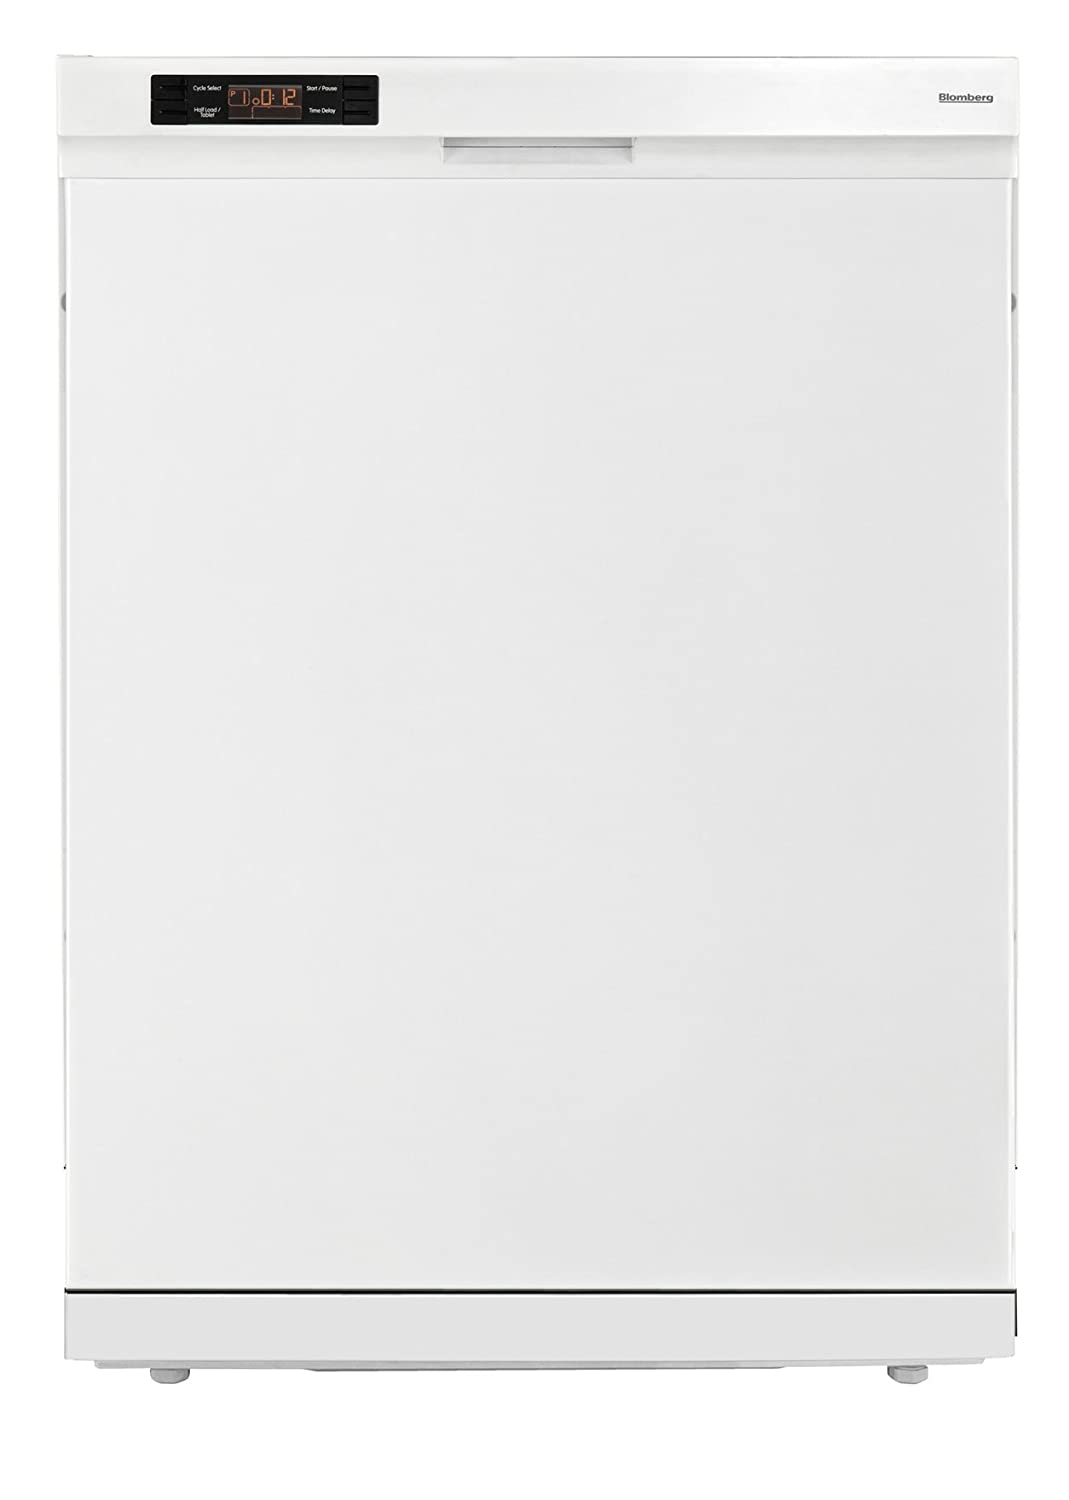 Blomberg DW24100W Dishwasher with Standard Tub Front Controls, 14 Place Settings, White